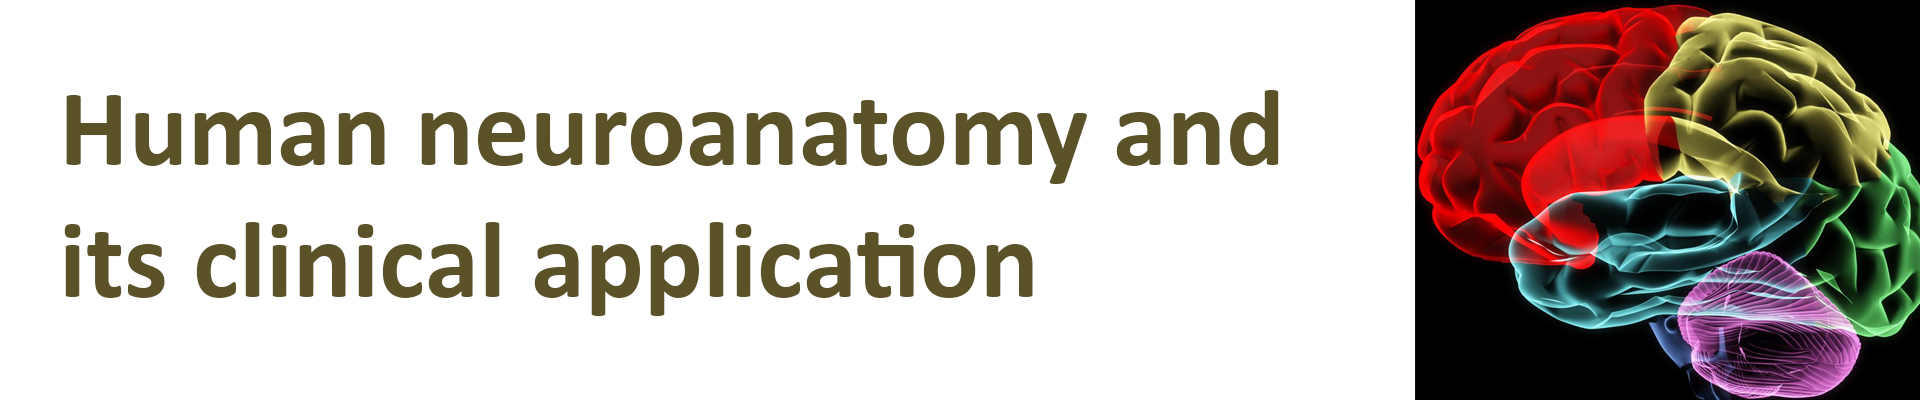 Humane Neuroanatomy Course